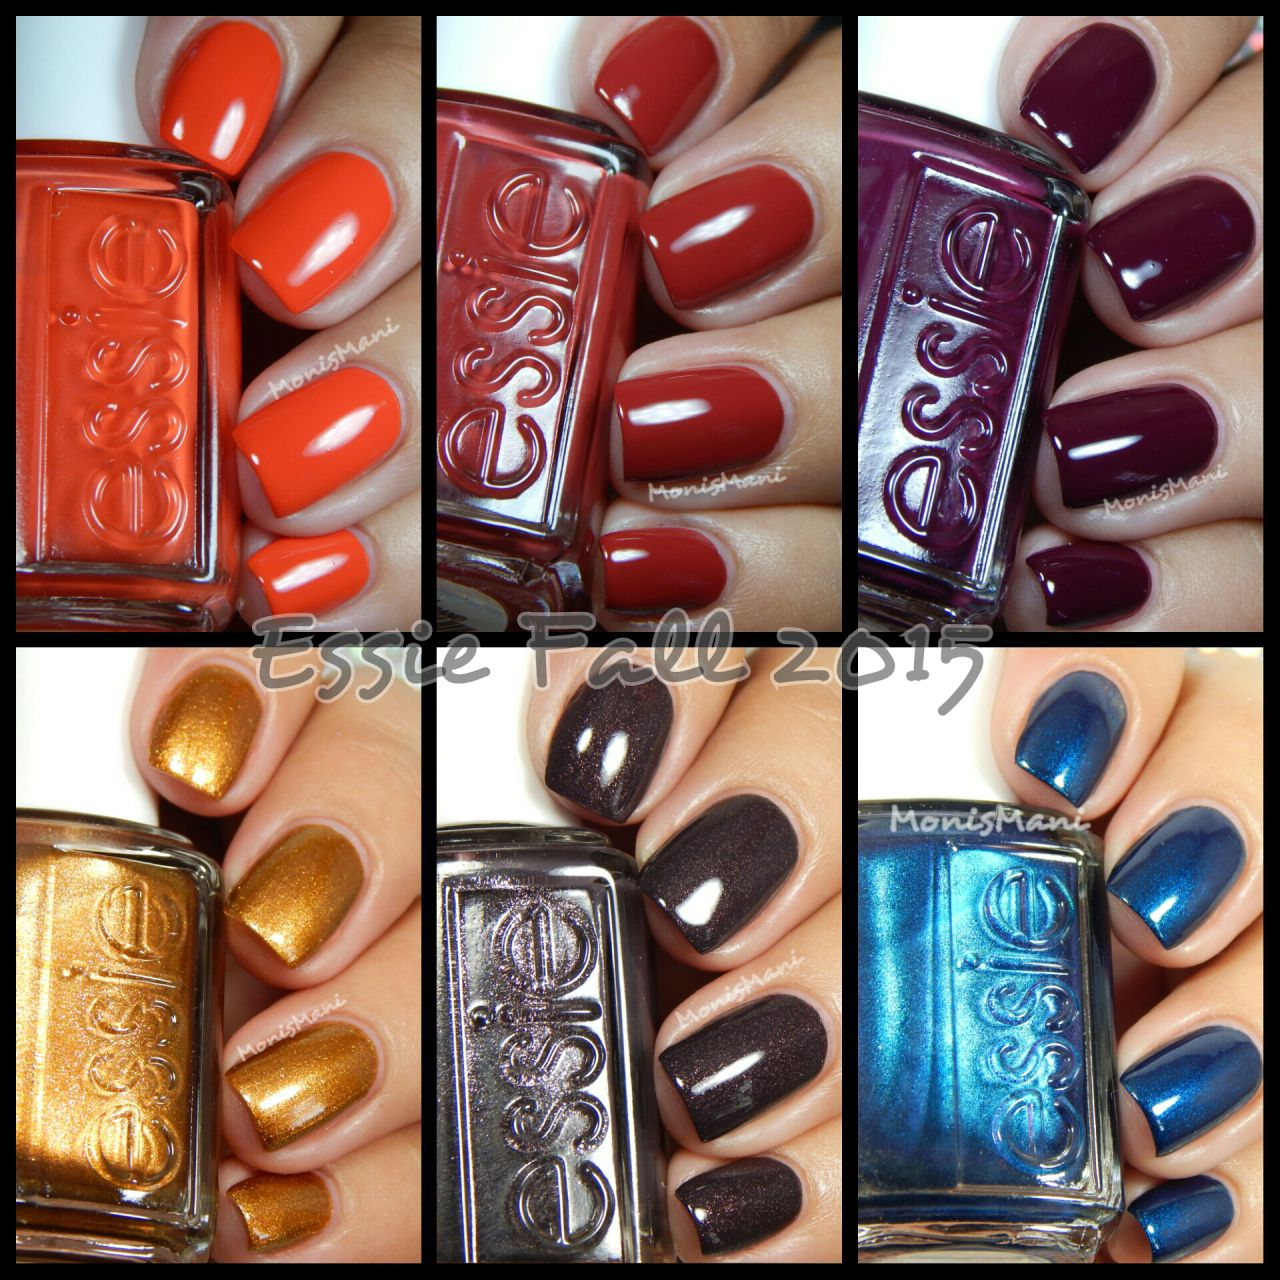 Essie Fall 2015 Collection | Fall 2015, Makeup and Hair makeup